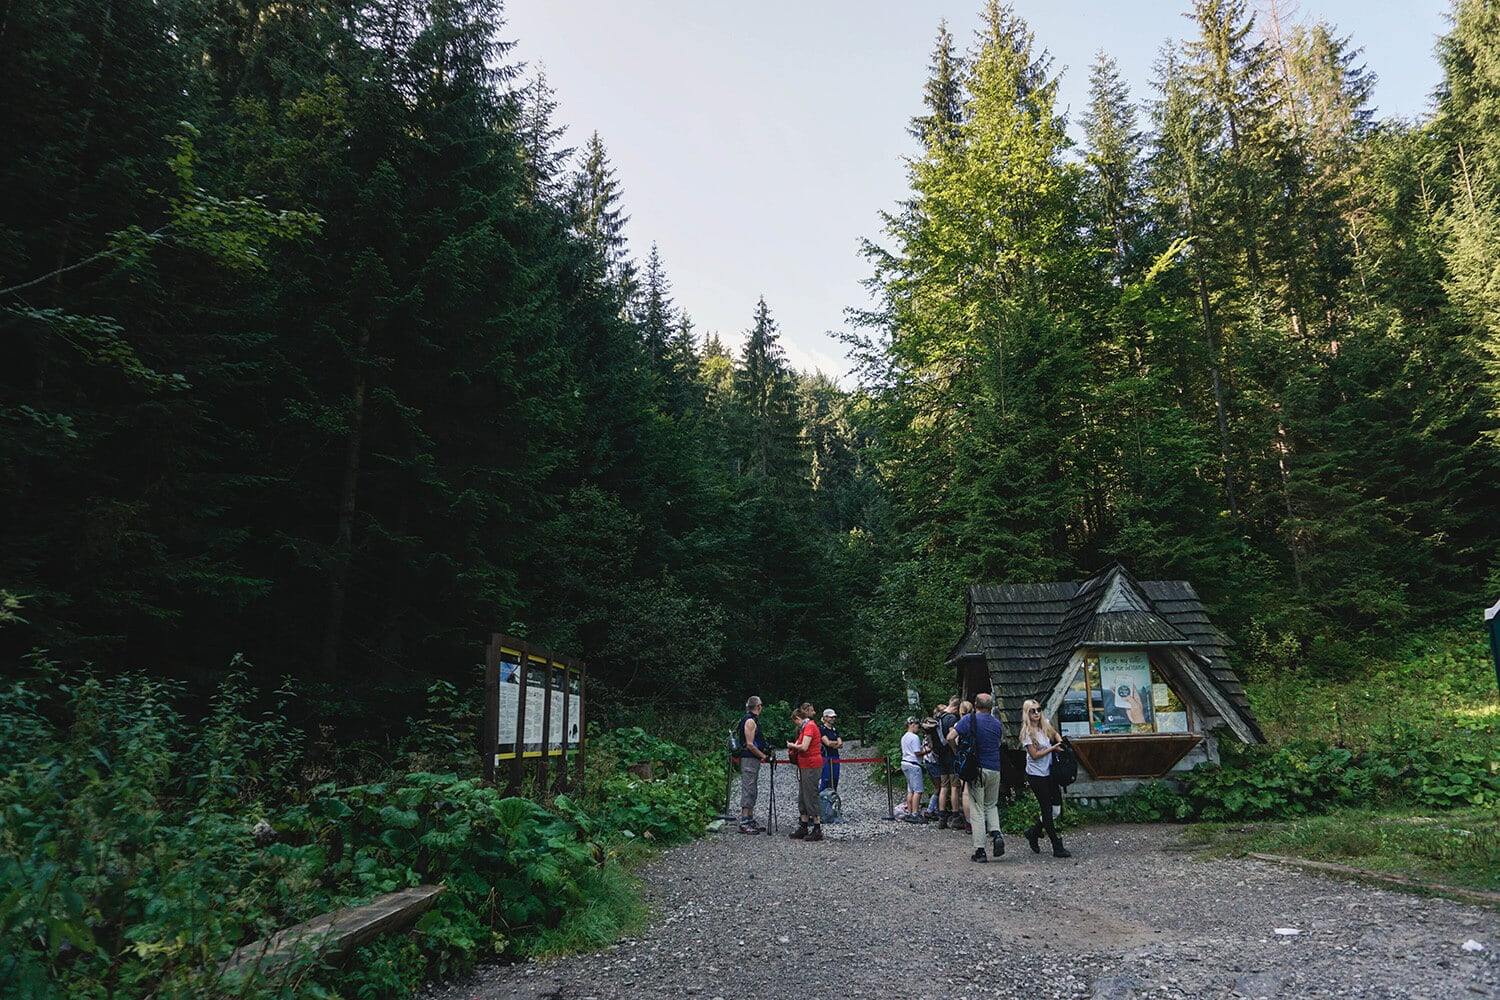 entance to tatra national park in poland